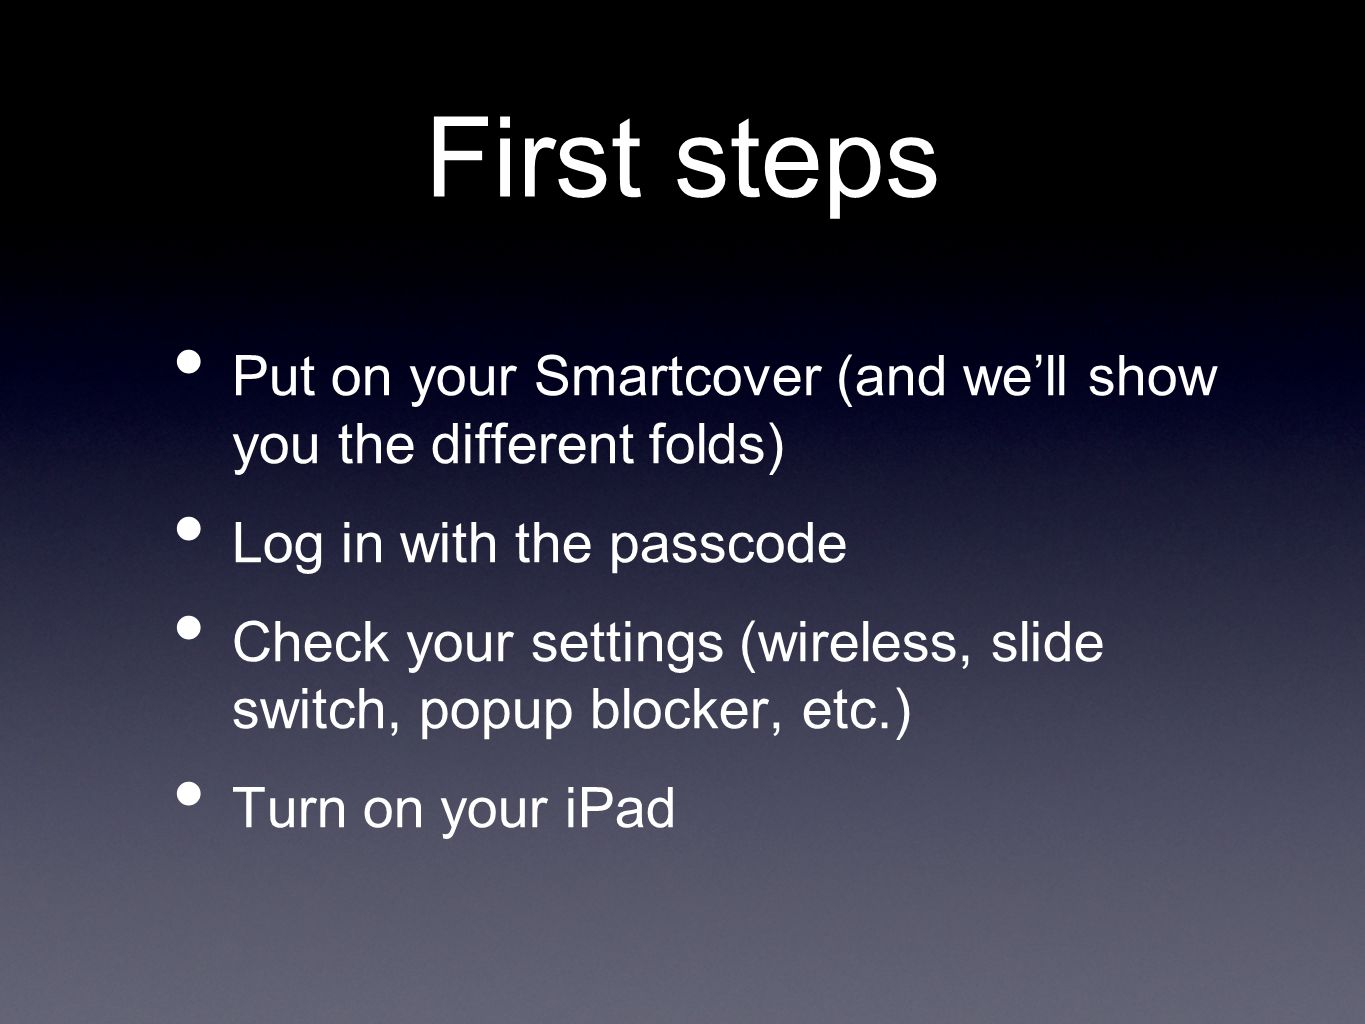 First steps Put on your Smartcover (and we'll show you the different folds) Log in with the passcode Check your settings (wireless, slide switch, popup blocker, etc.) Turn on your iPad